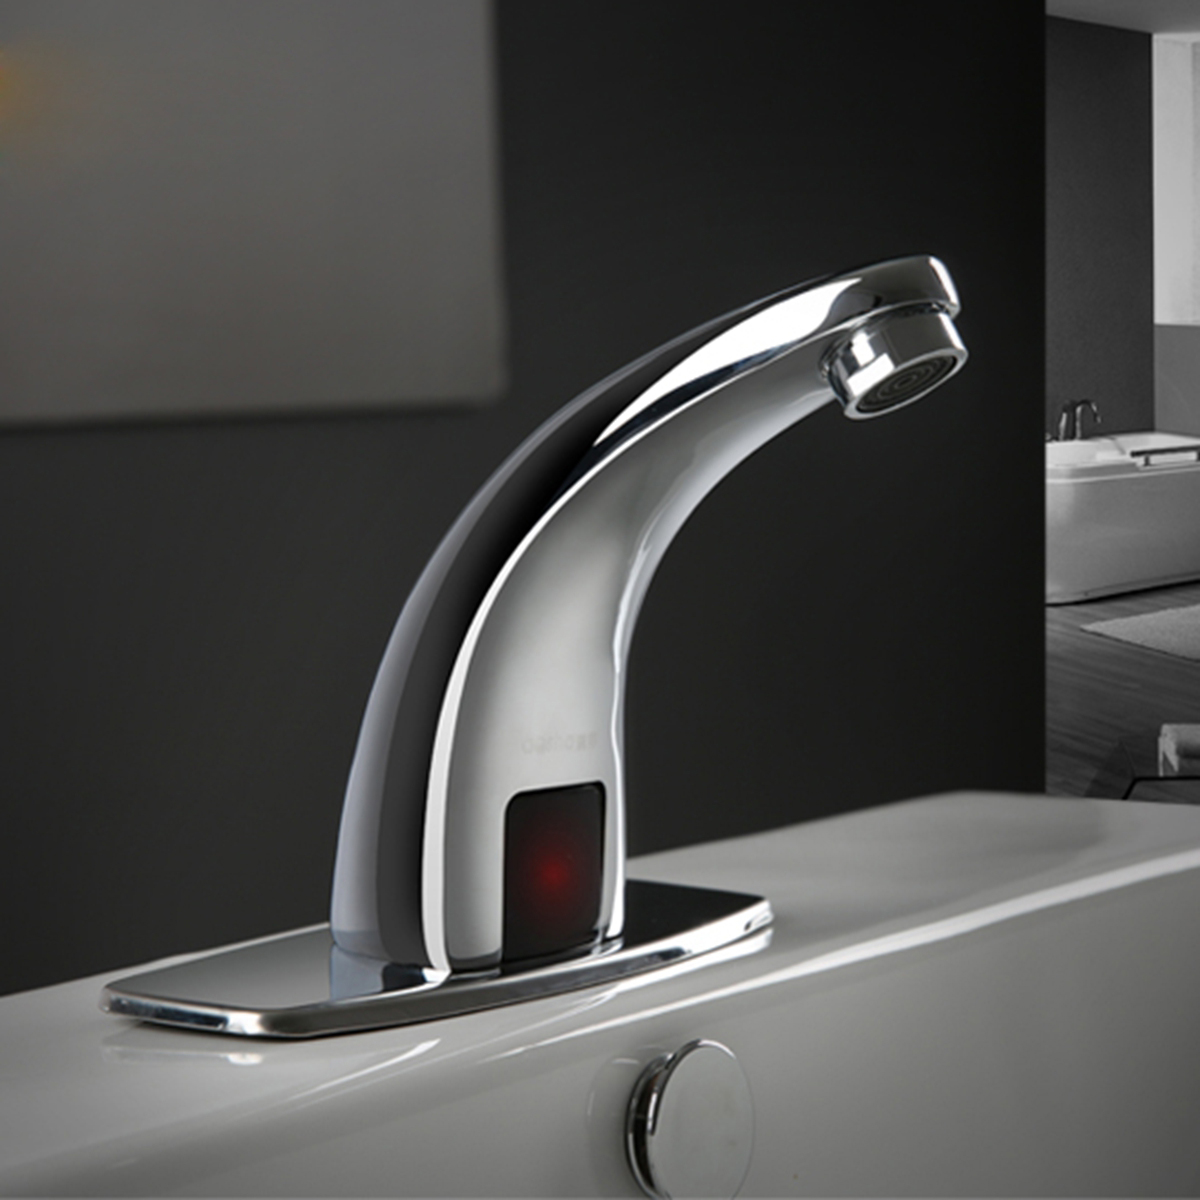 Automatic Touchless Bathroom Sink Faucet Commercial Hands Free Tap ...